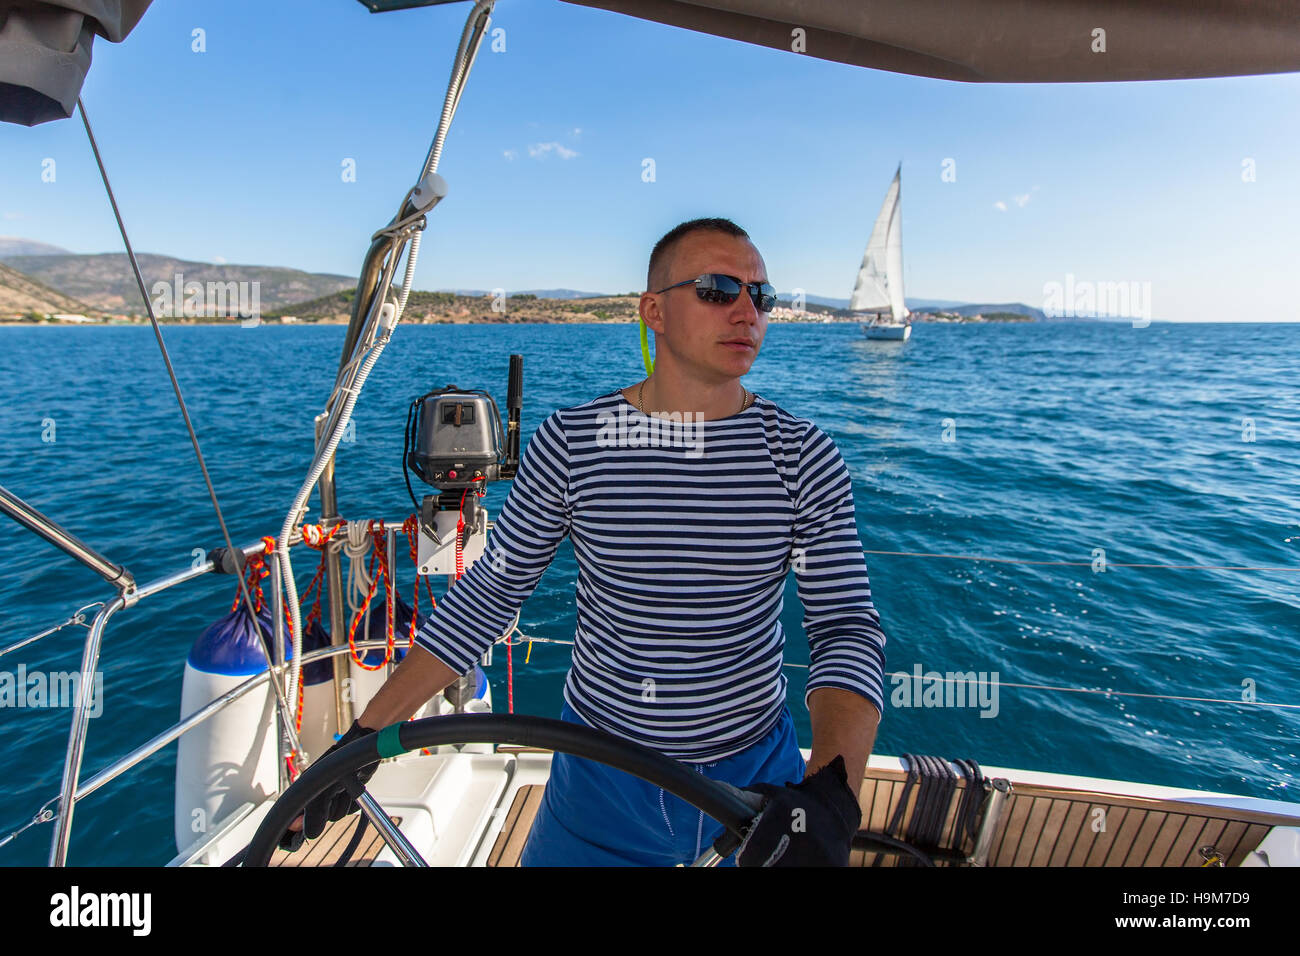 Skipper at the helm controls of a sailing yacht. Stock Photo